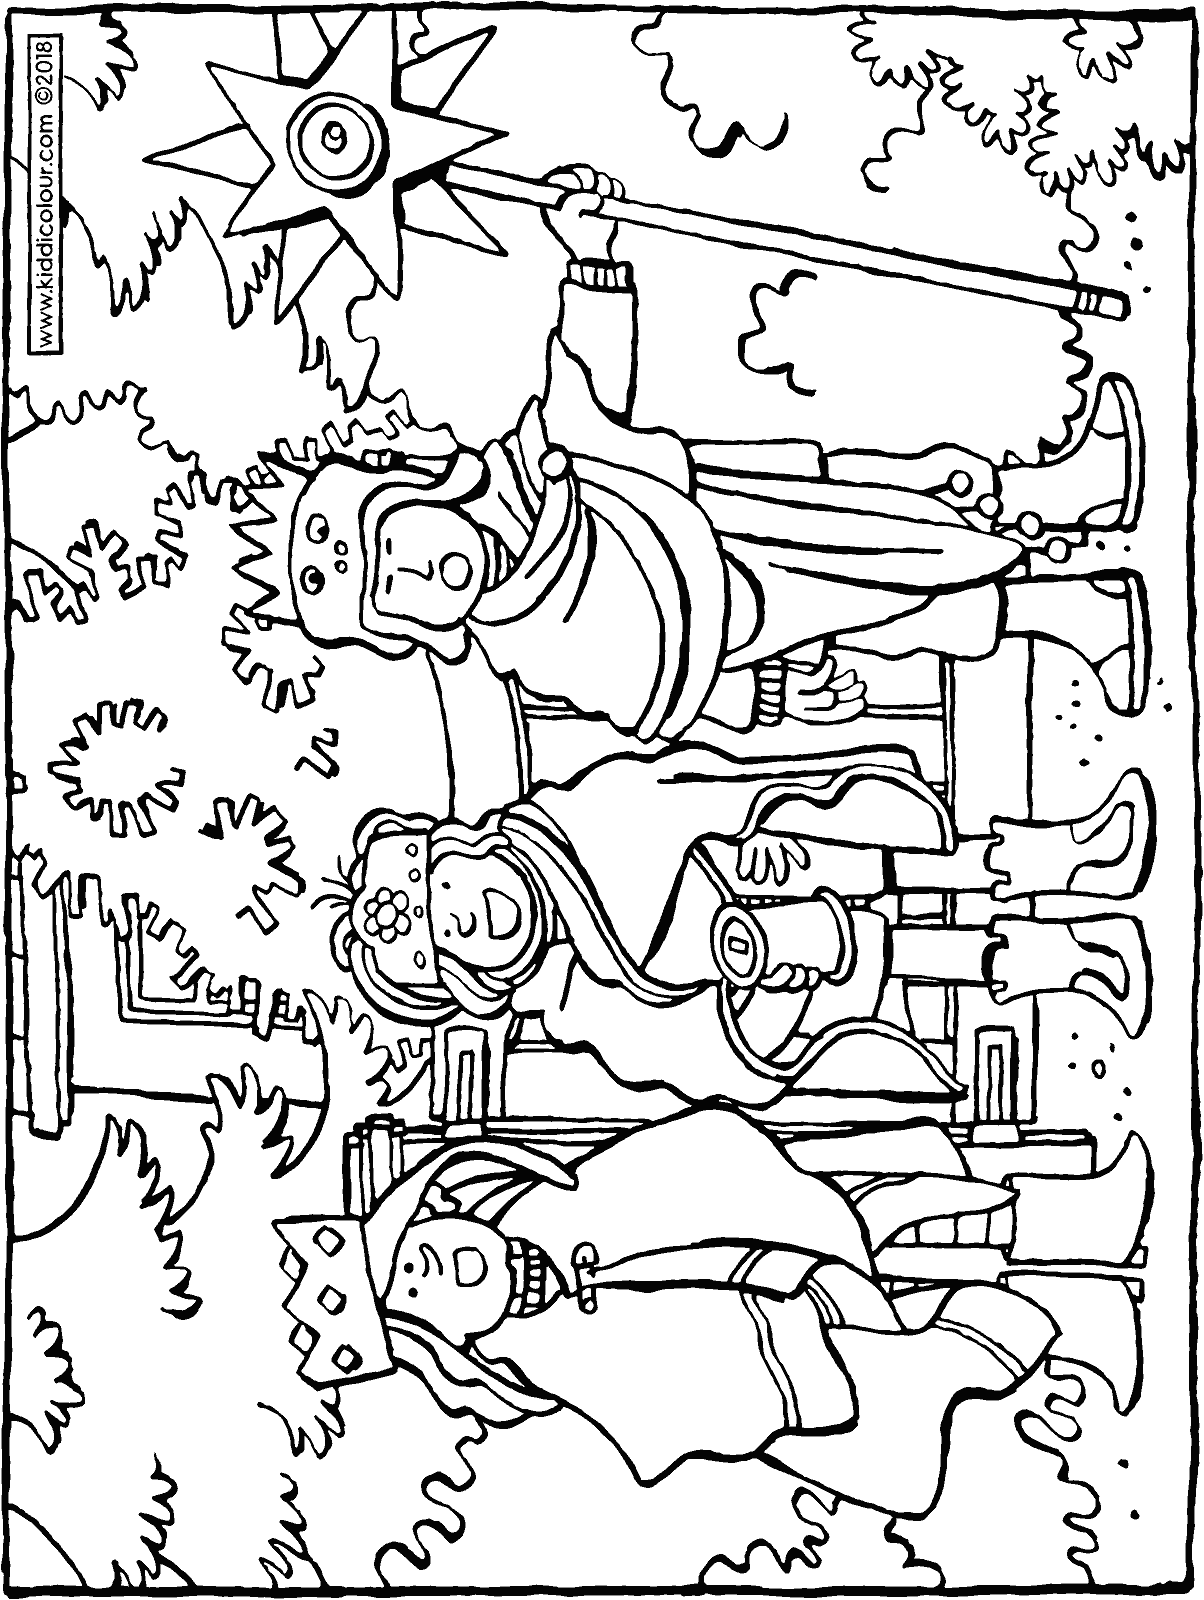 singing we three kings colouring page drawing picture 01H